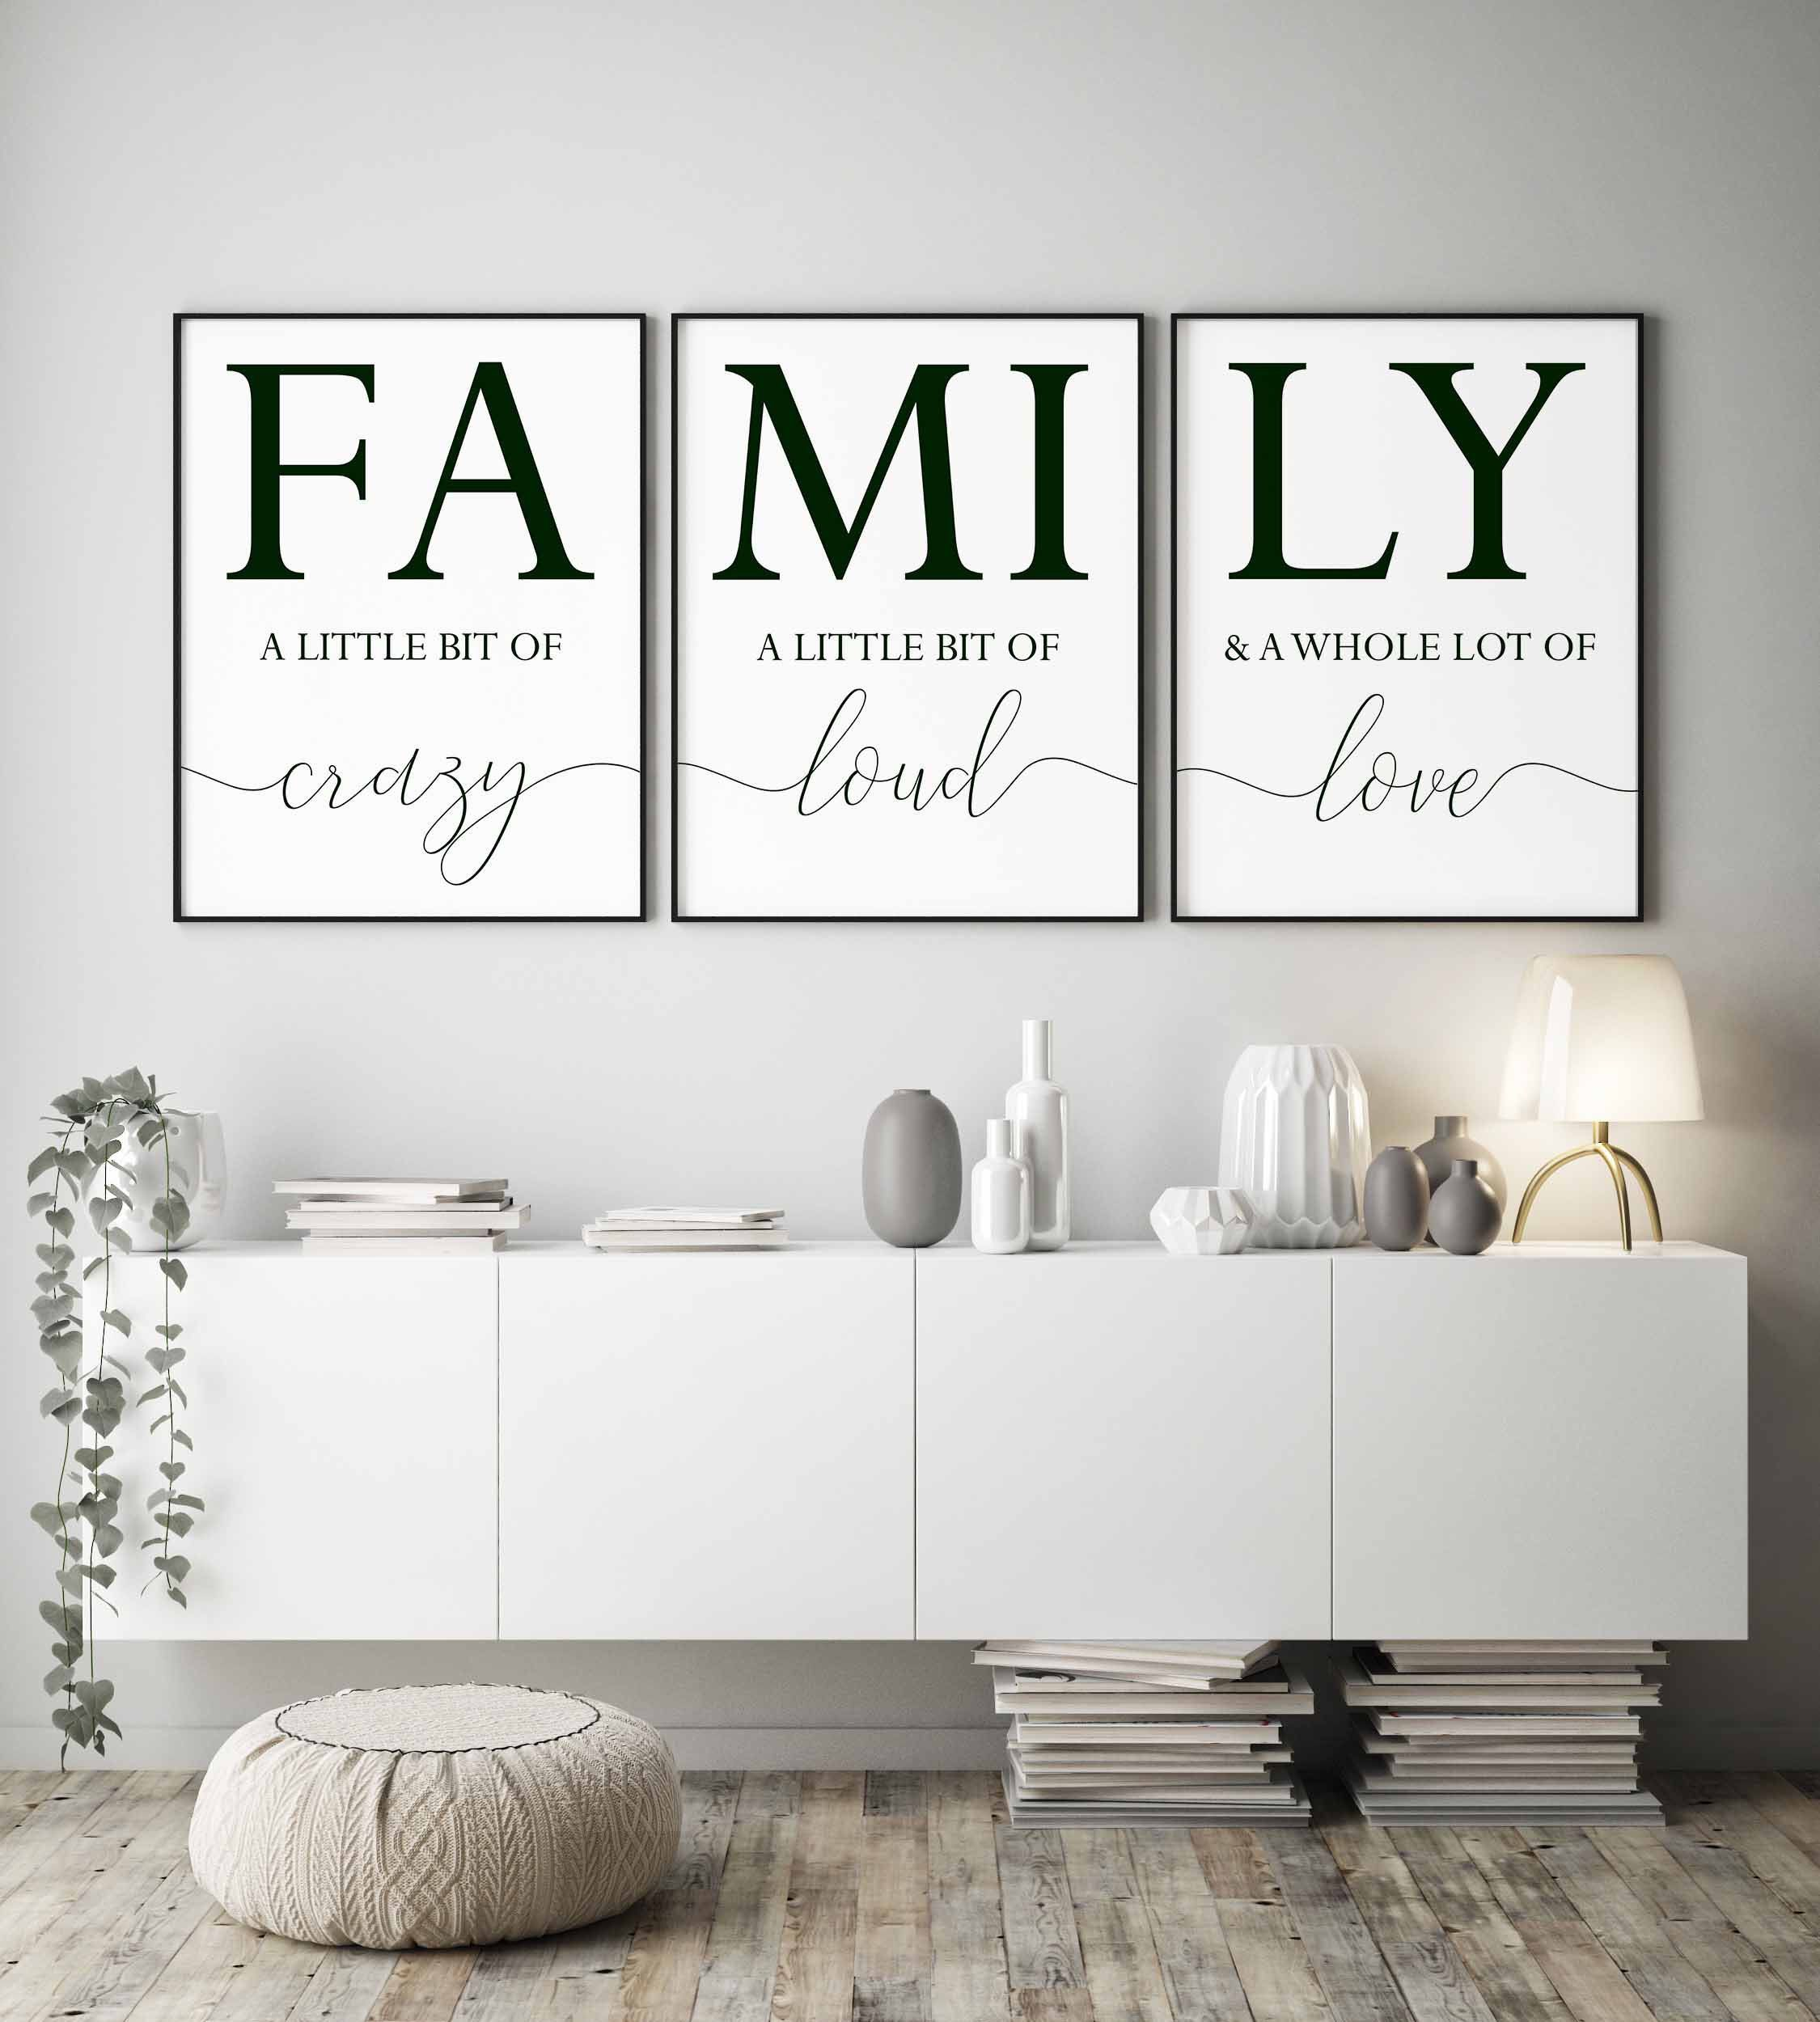 Photo of Family sign,Family a little bit of crazy print,Set of 3 Prints,Family quotes,Home Decor signs,Living Room wall Art,Bedroom wall decor,Prints